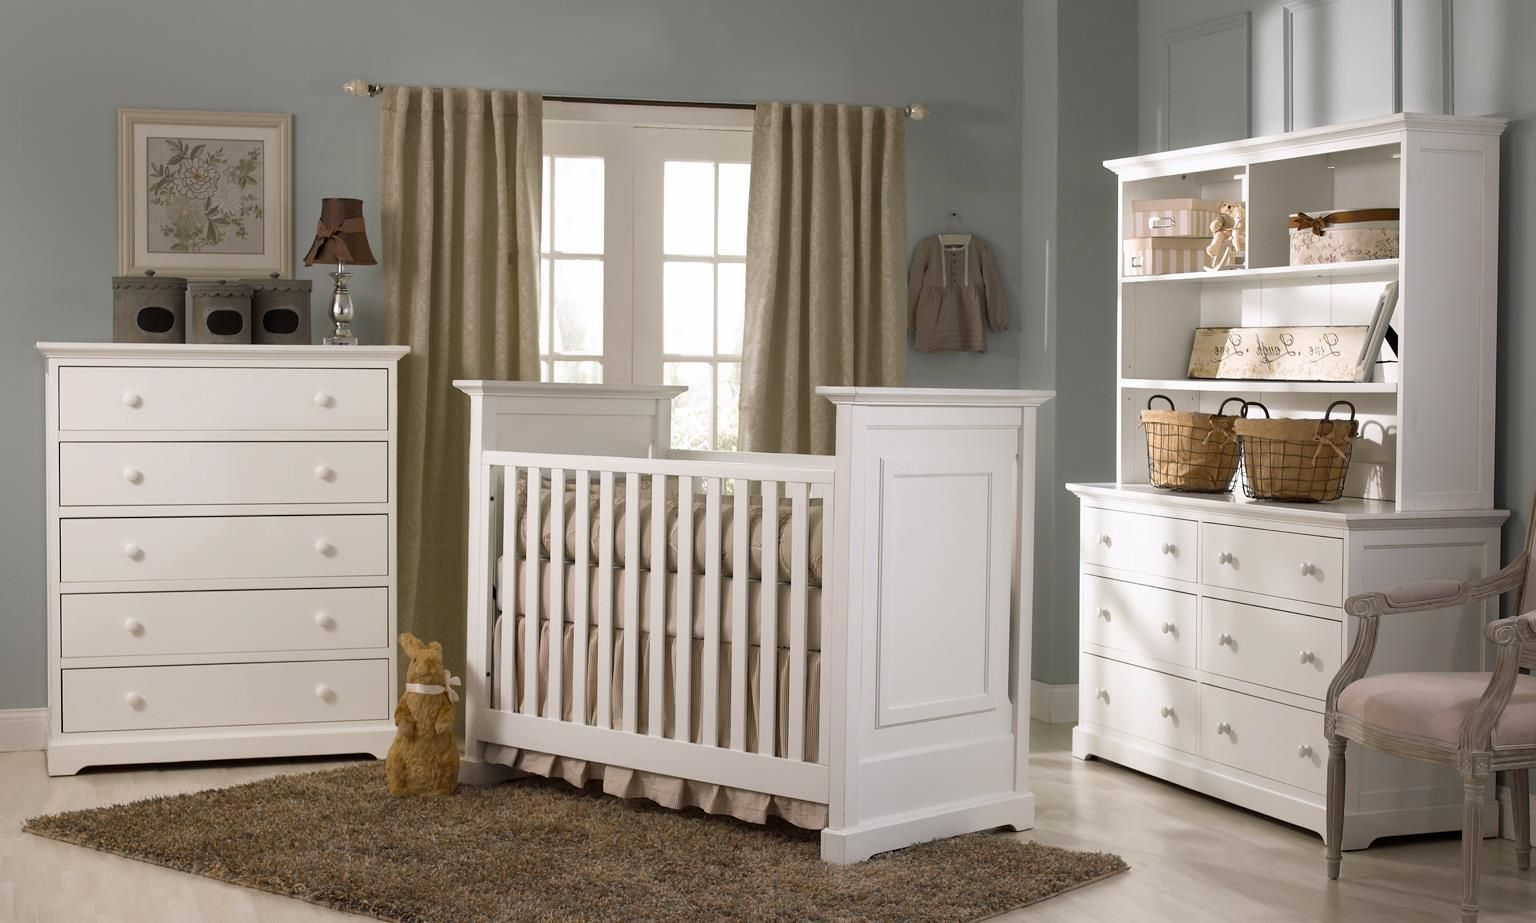 Bedroom Neutral Baby Nursery Ideas